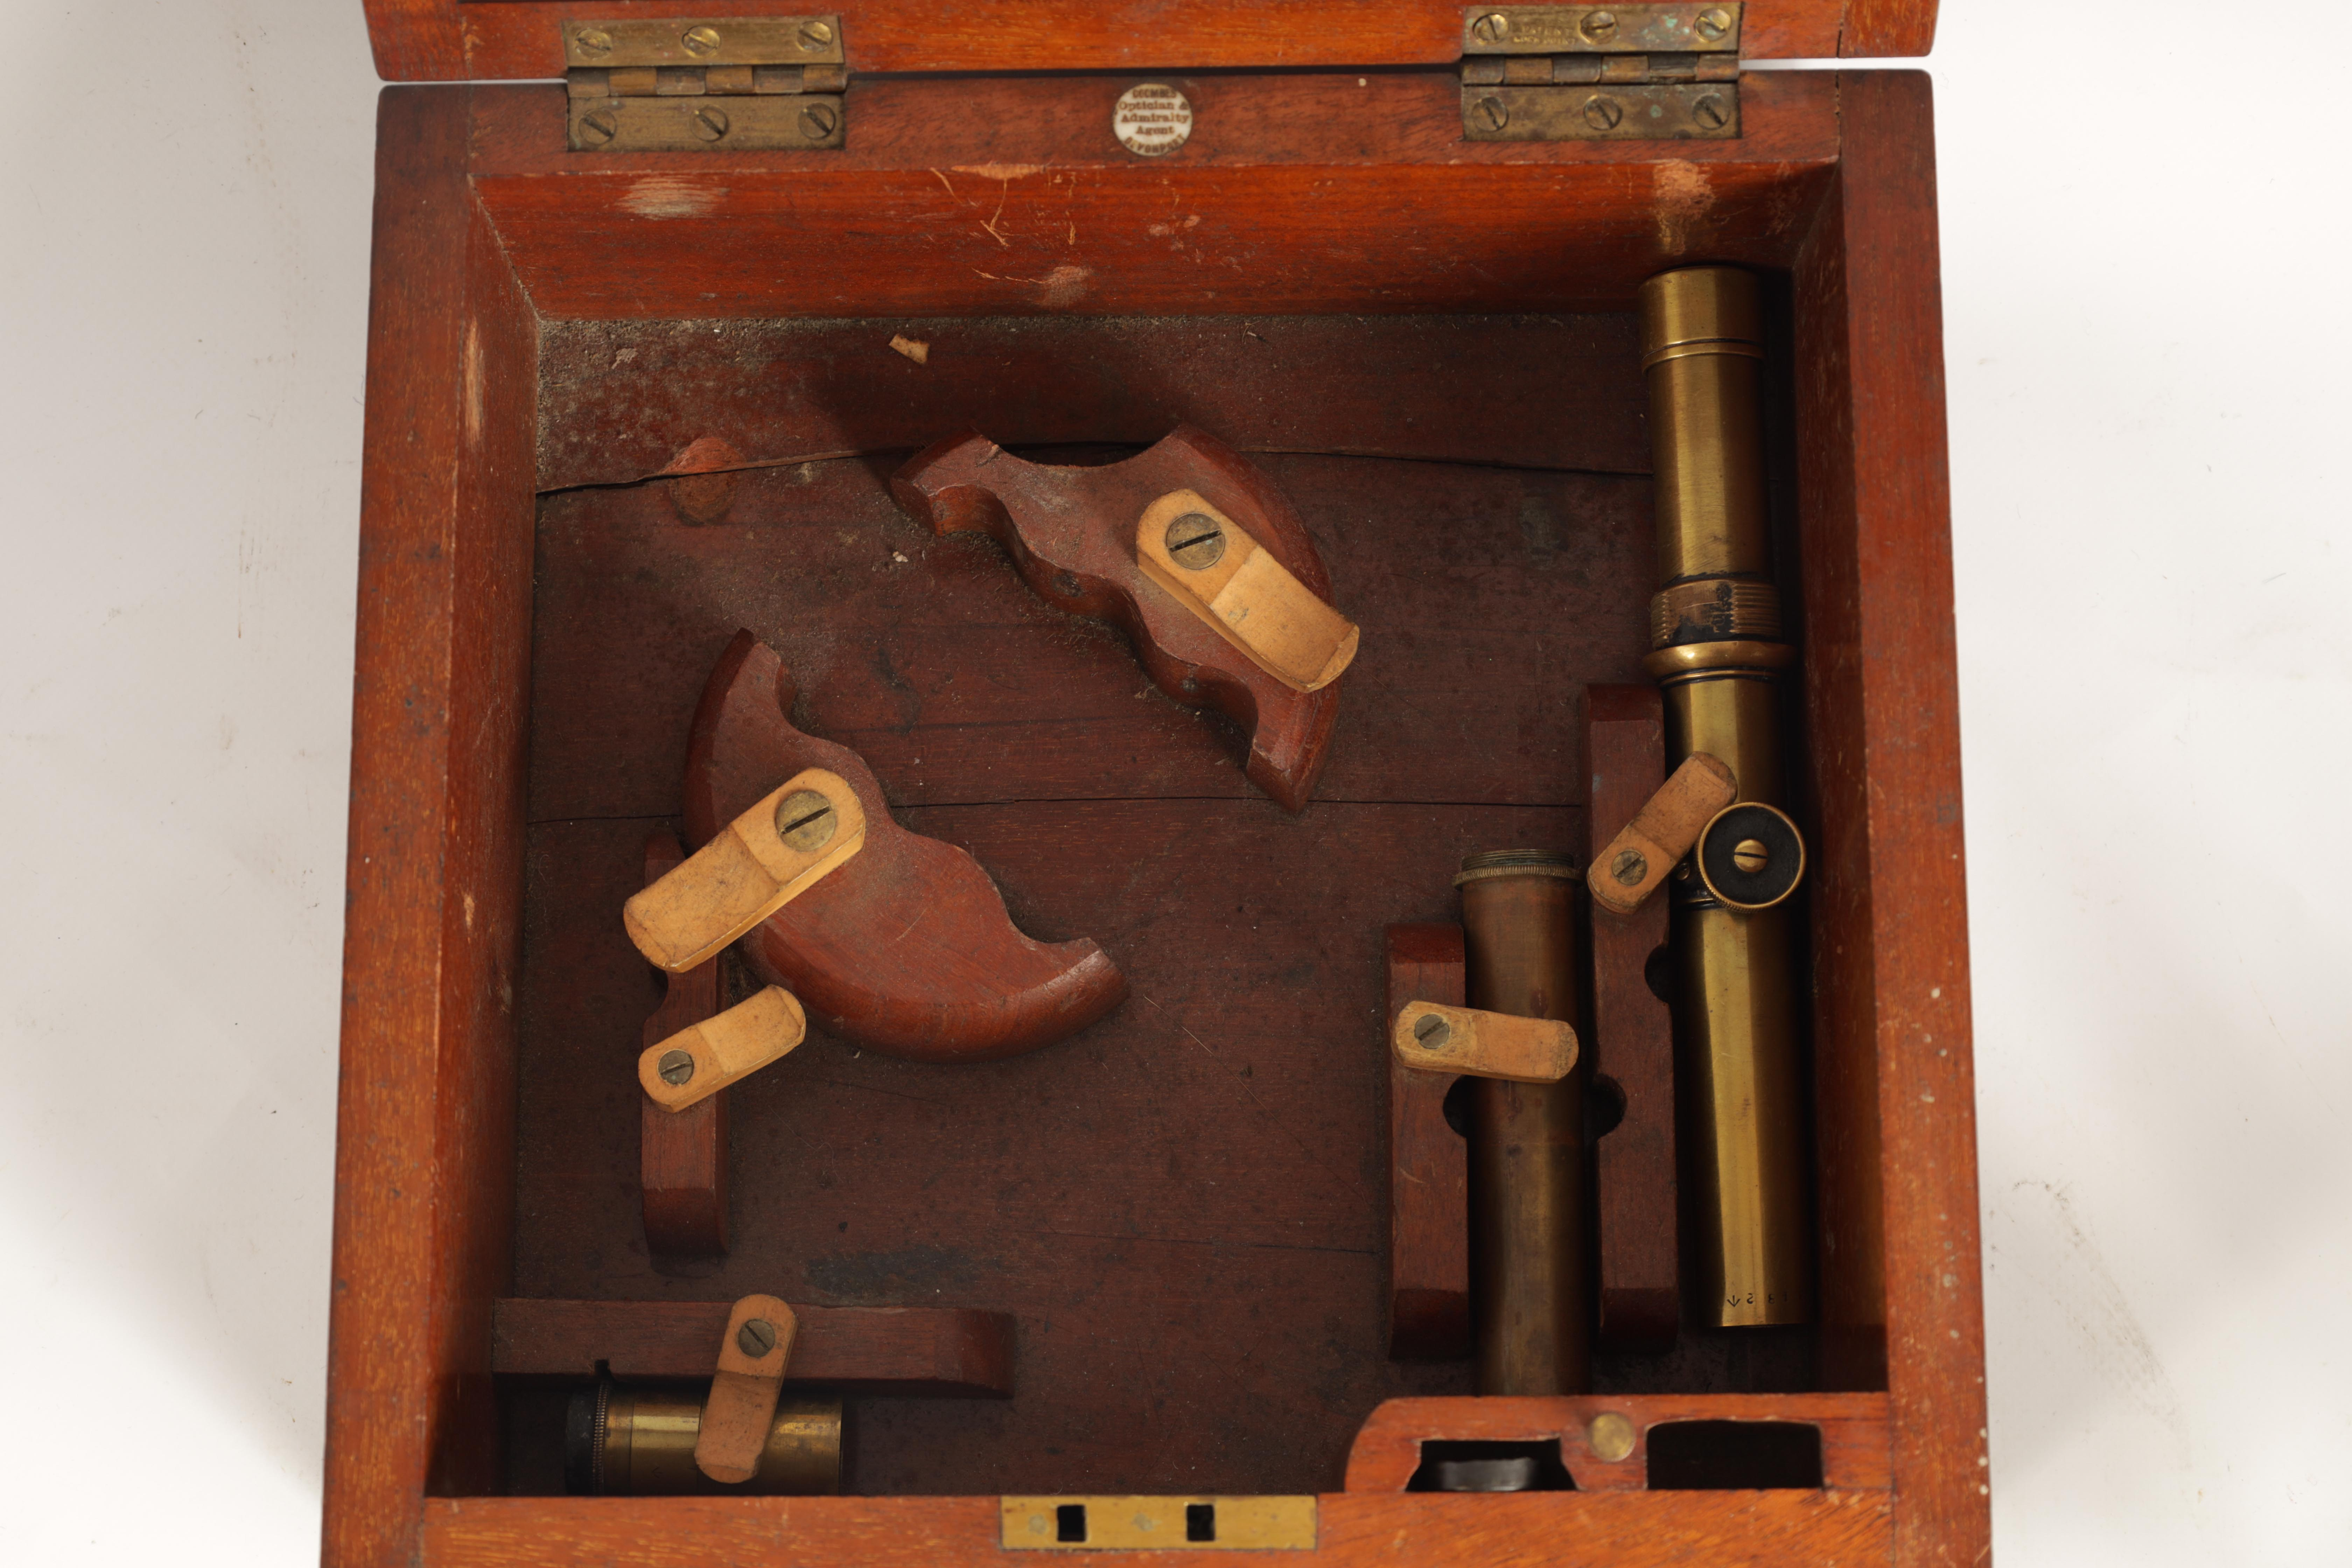 J. COOMBES, OPTICIAN & ADMIRALTY AGENT, DEVONPORT. A LATE 19TH CENTURY BRASS FRAMED SEXTANT IN - Image 15 of 17